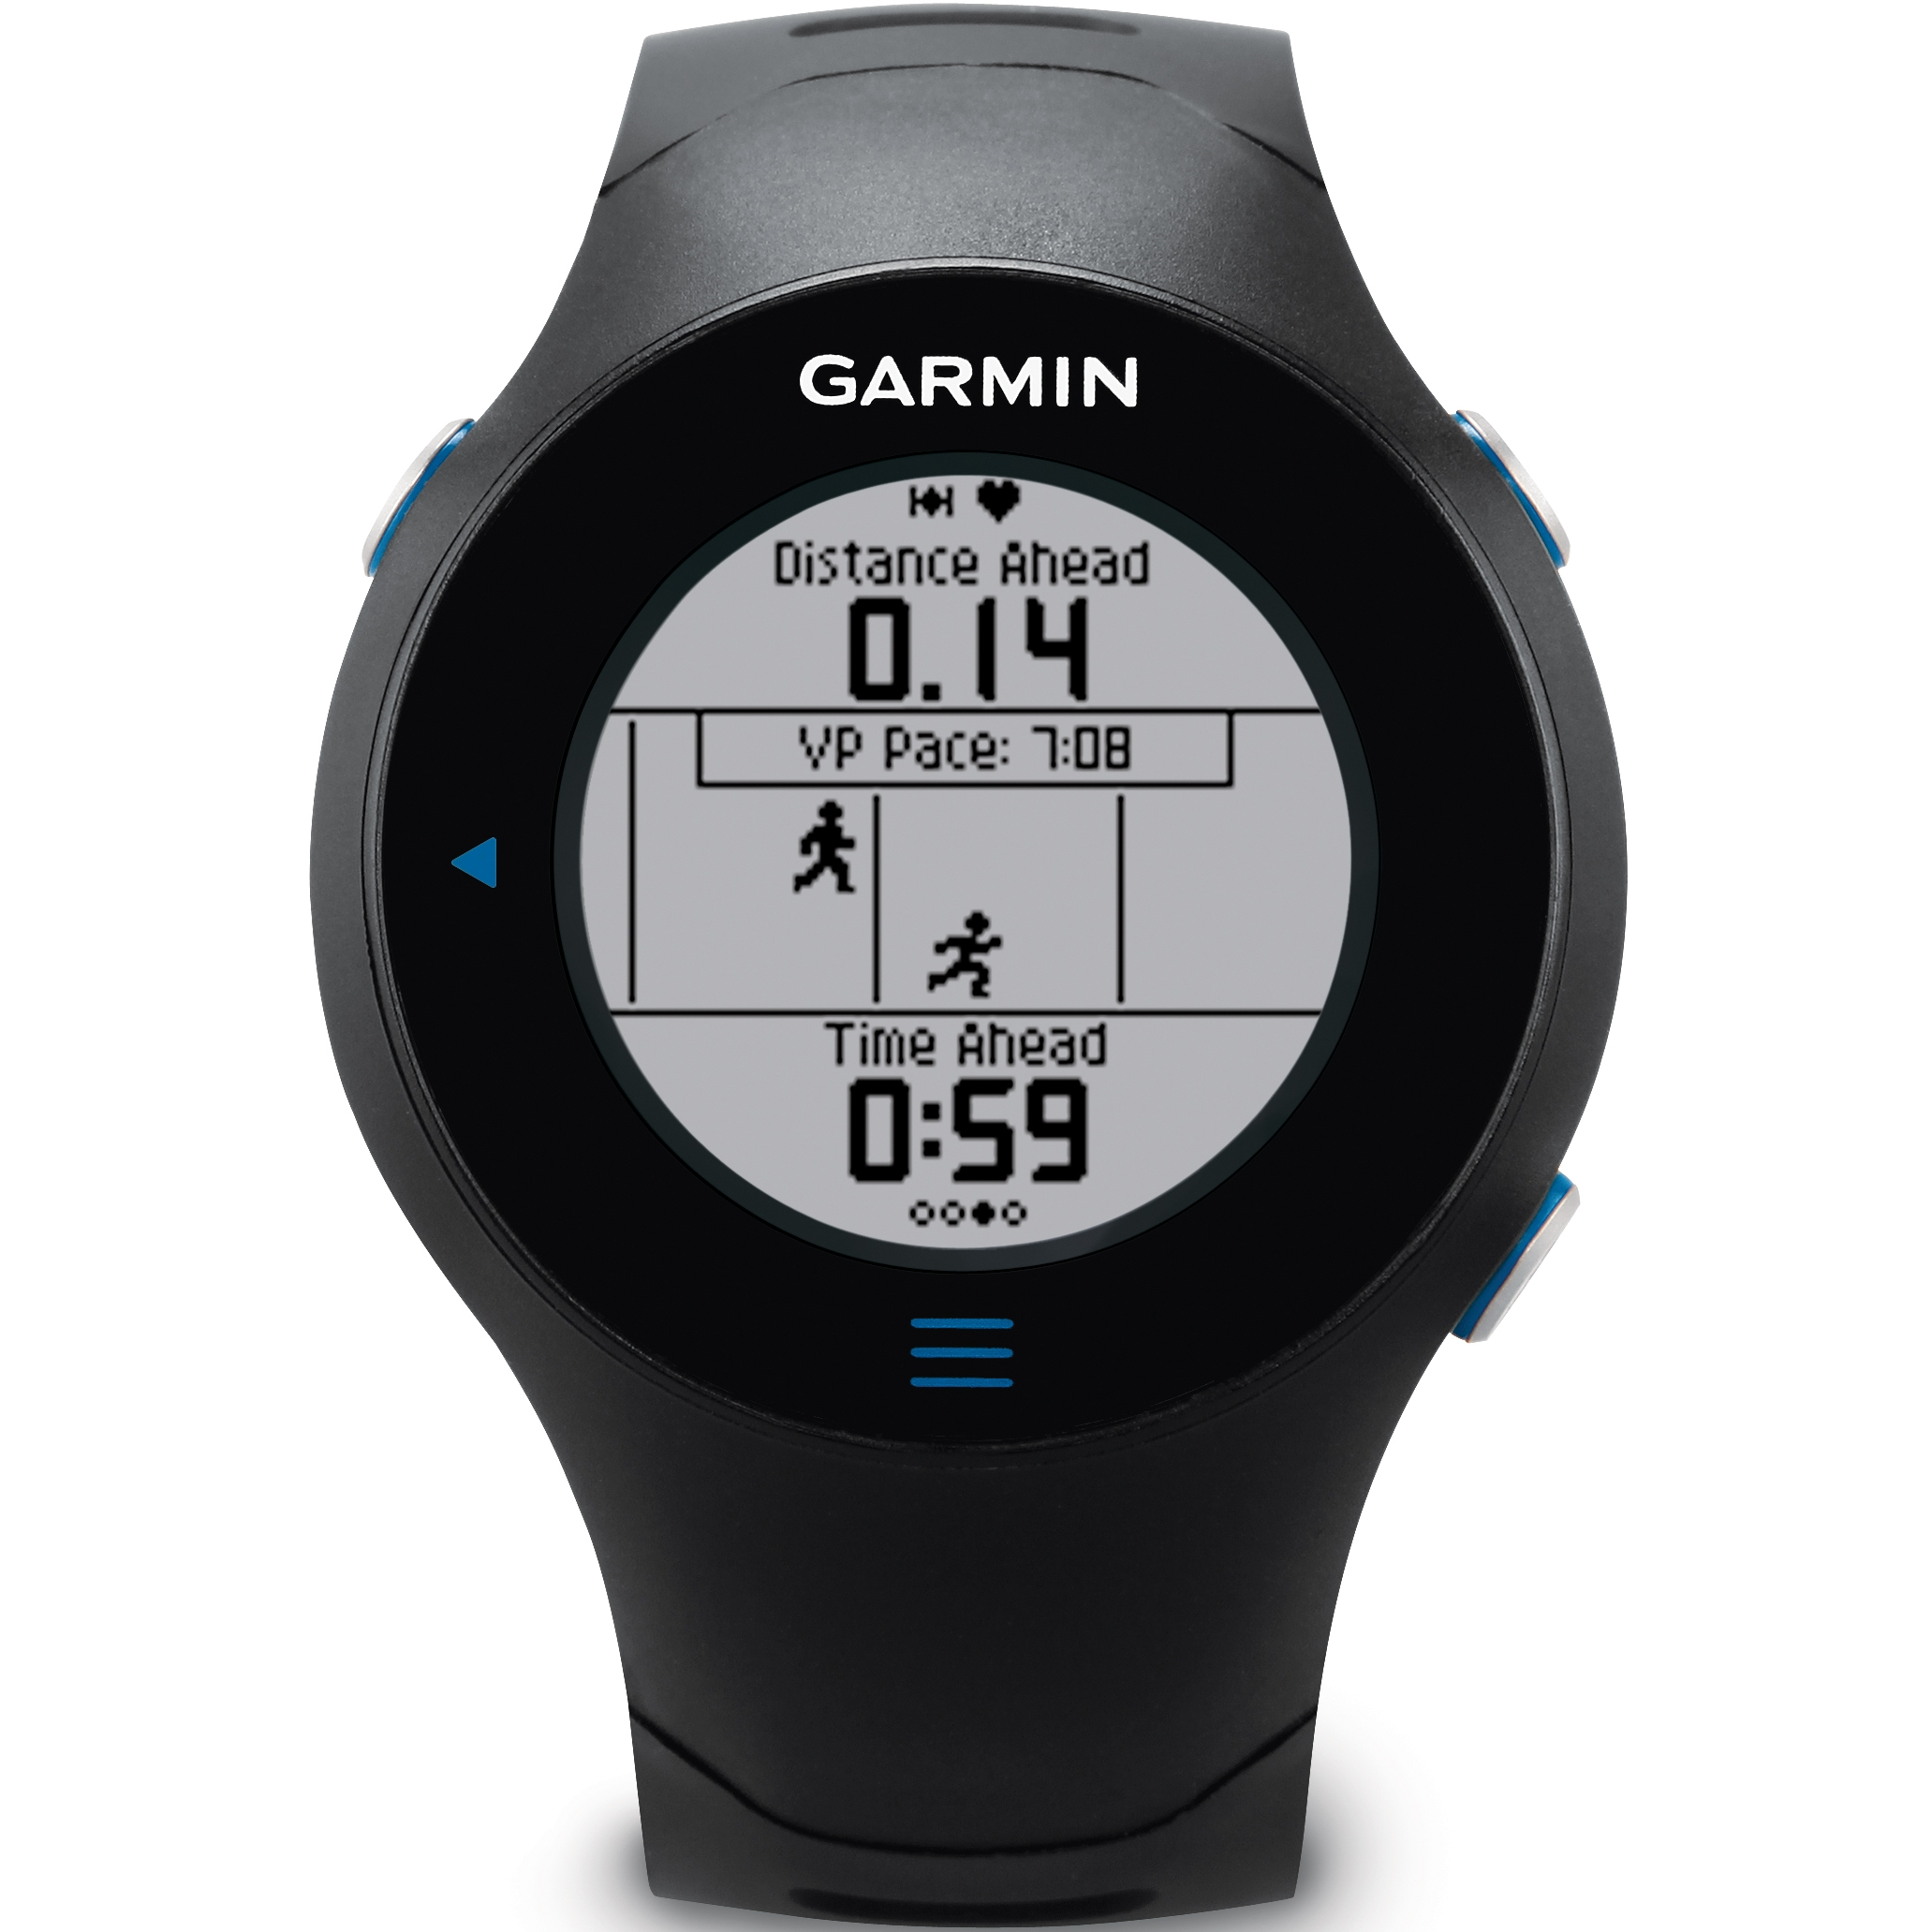 gents garmin forerunner 610 touch screen gps heart rate monitor rh watchshop com Garmin 610 Review forerunner 610 manual español